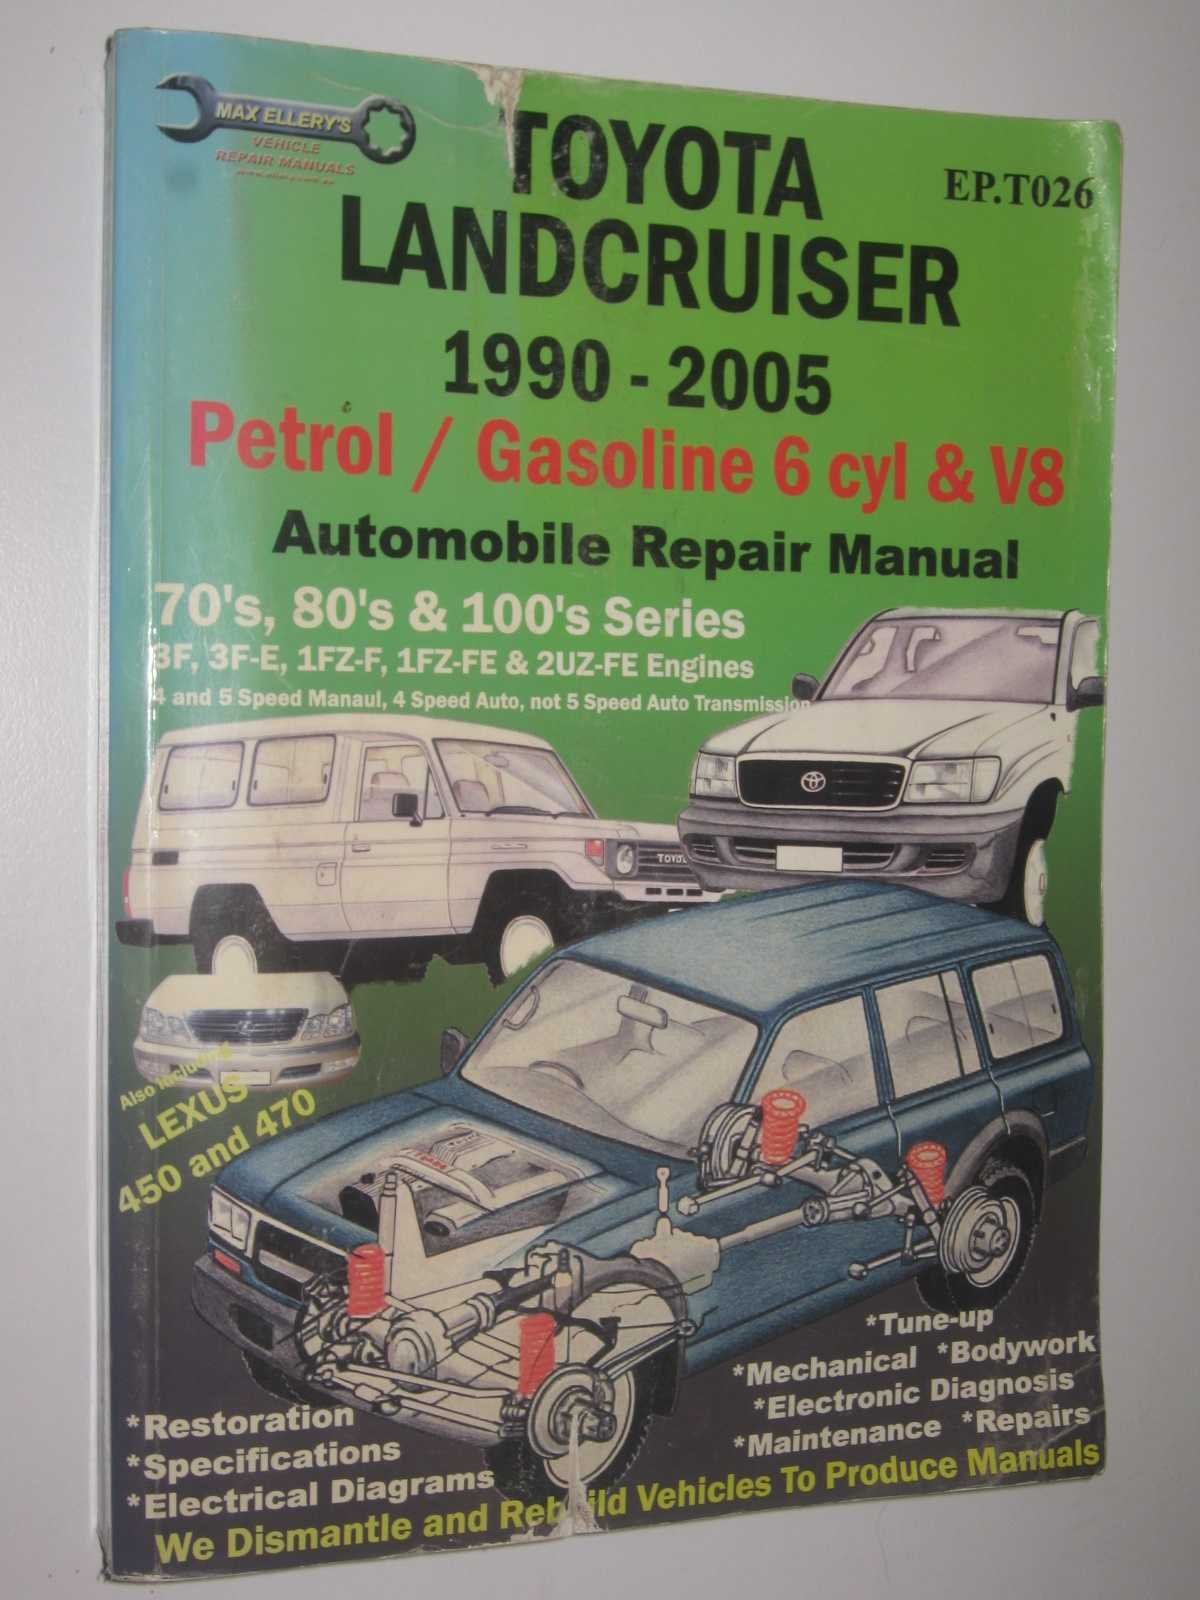 Image for Toyota Landcruiser 1990-2005 Automobile Repair Manual : Petrol/Gasoline 6 cyl and V8